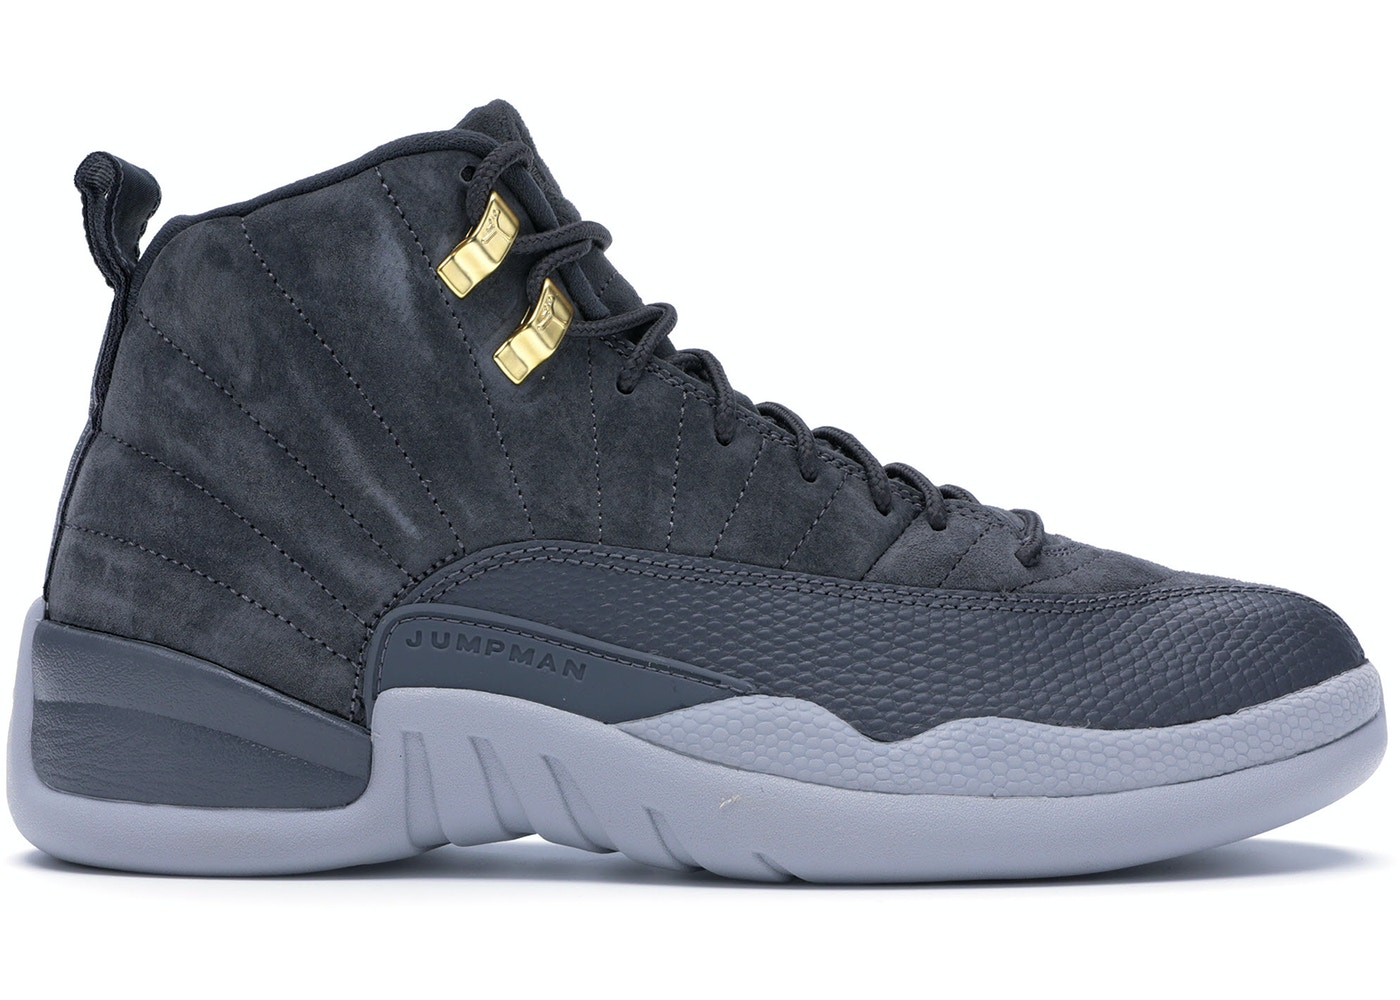 1a5119bb7221a7 Jordan 12 Retro Dark Grey - 130690-005